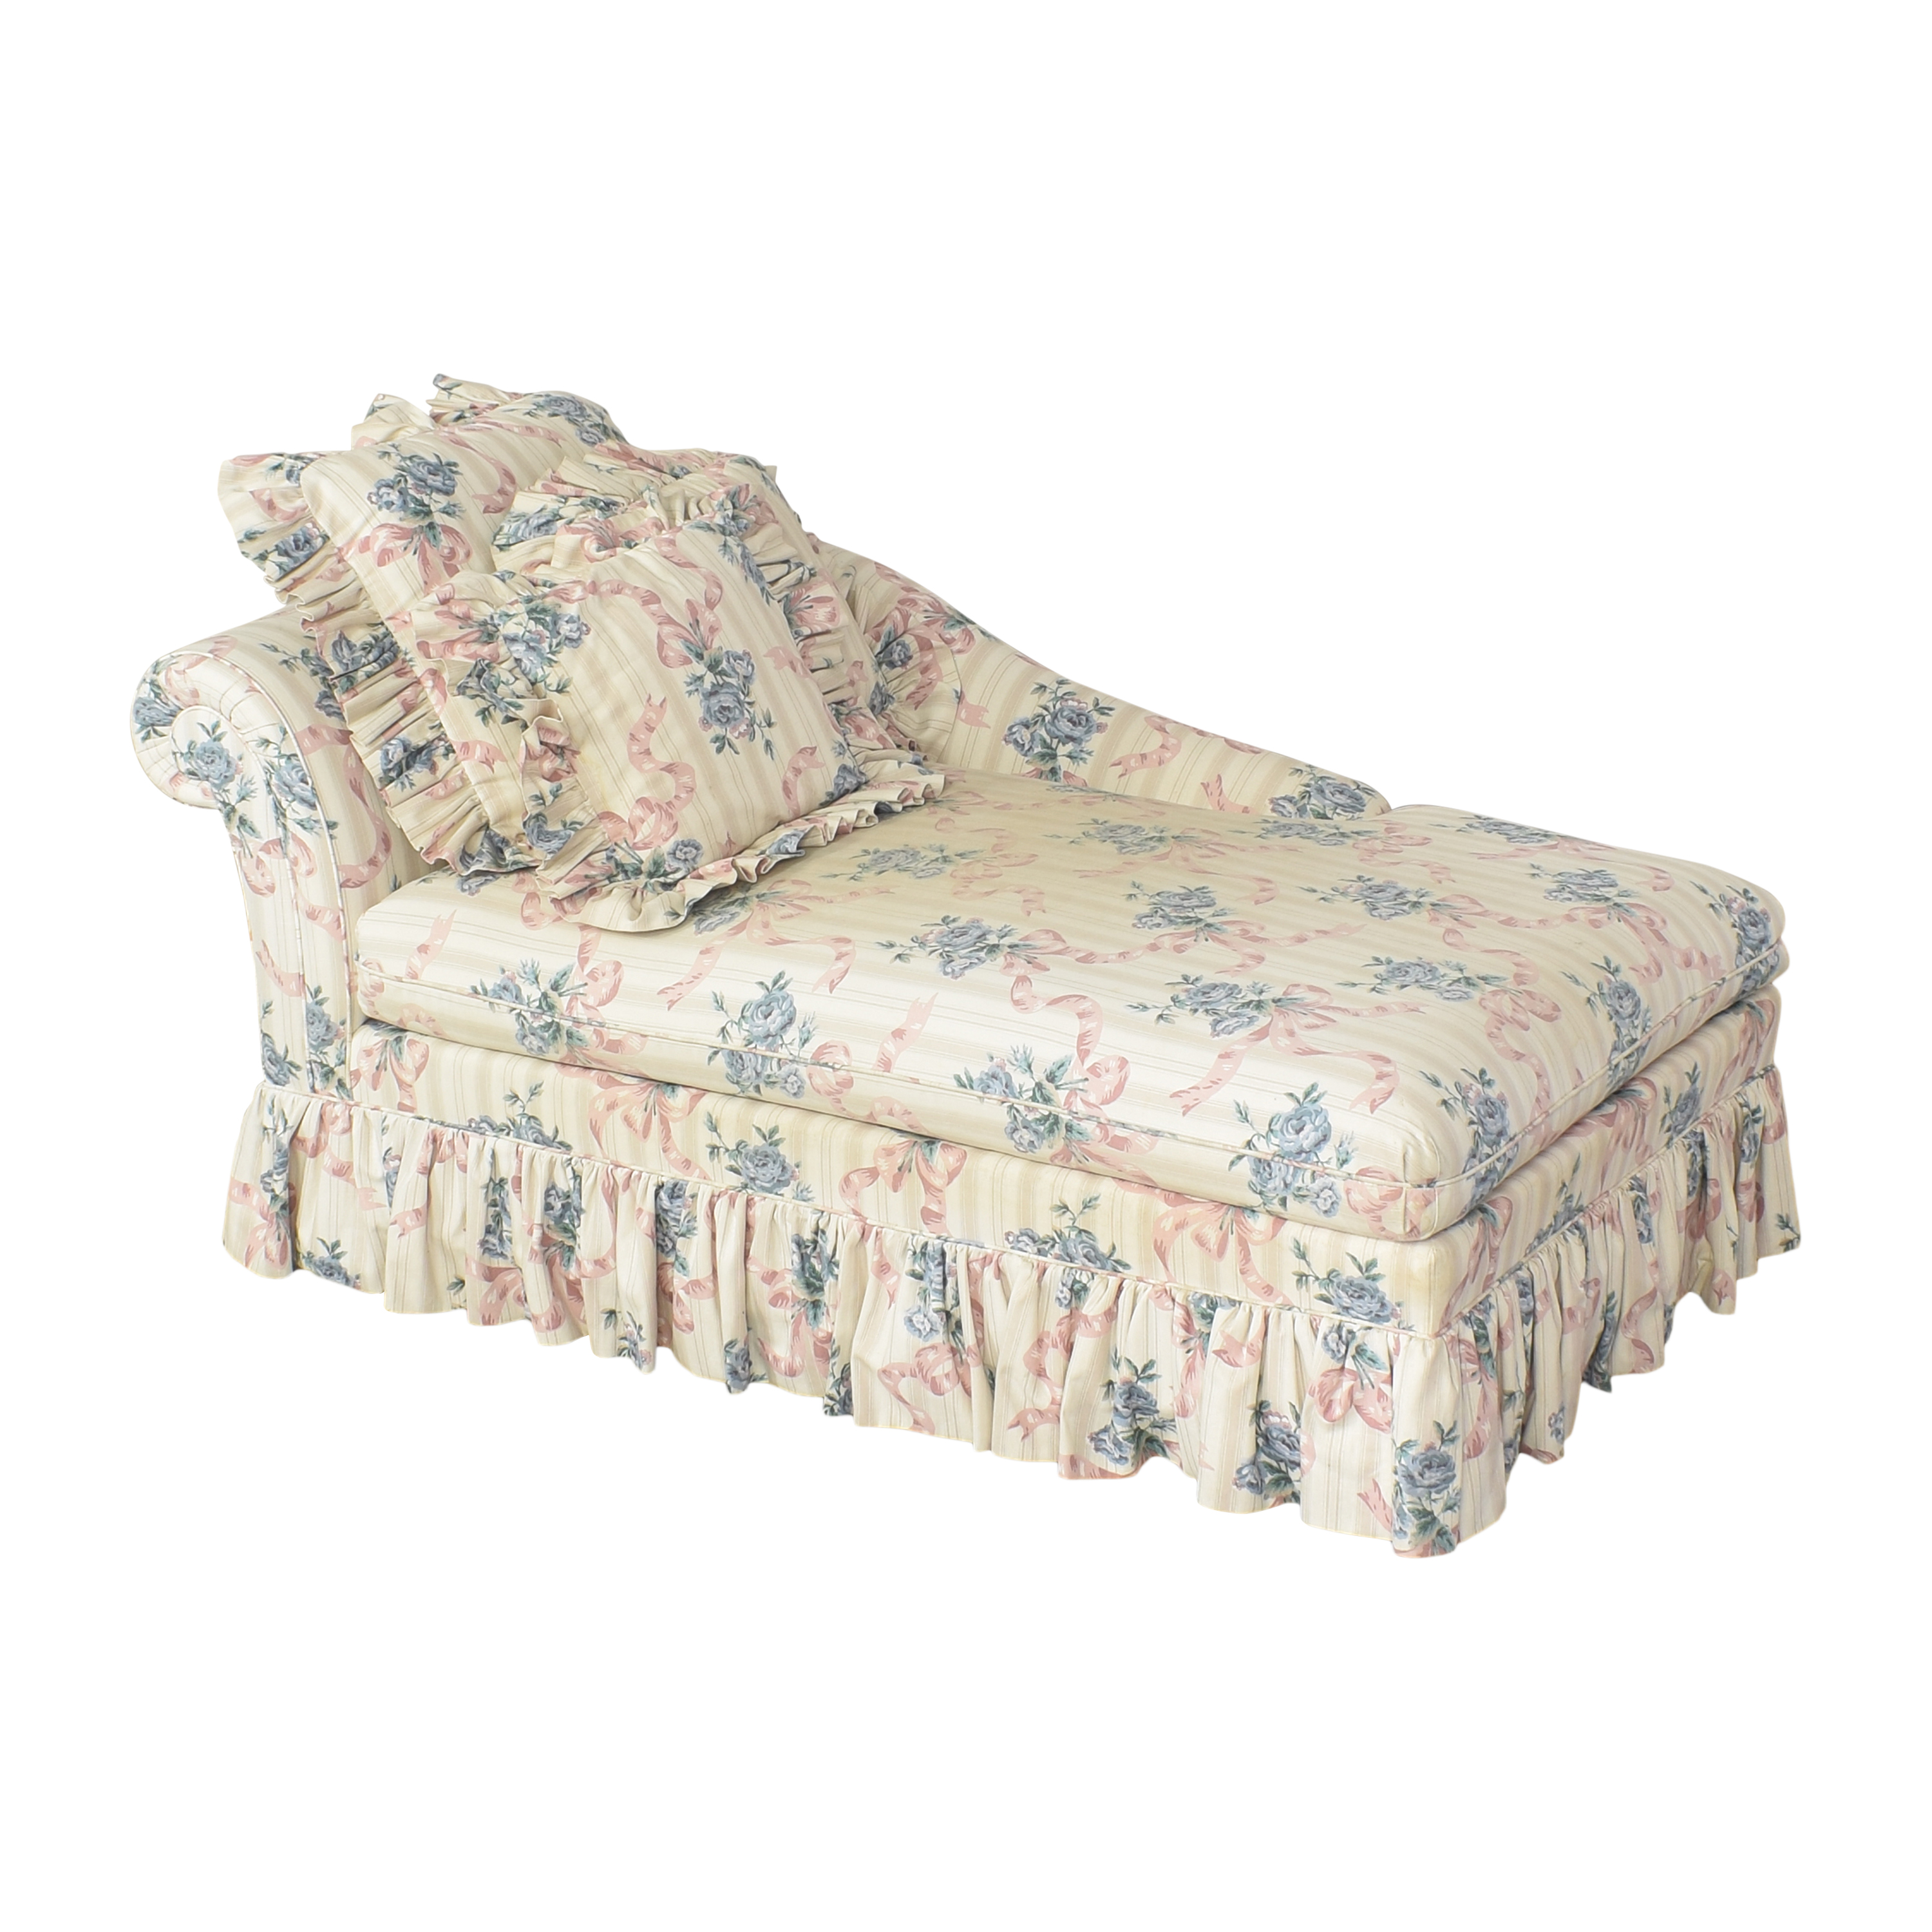 Ethan Allen Ethan Allen Traditional Classics Chaise Lounge coupon